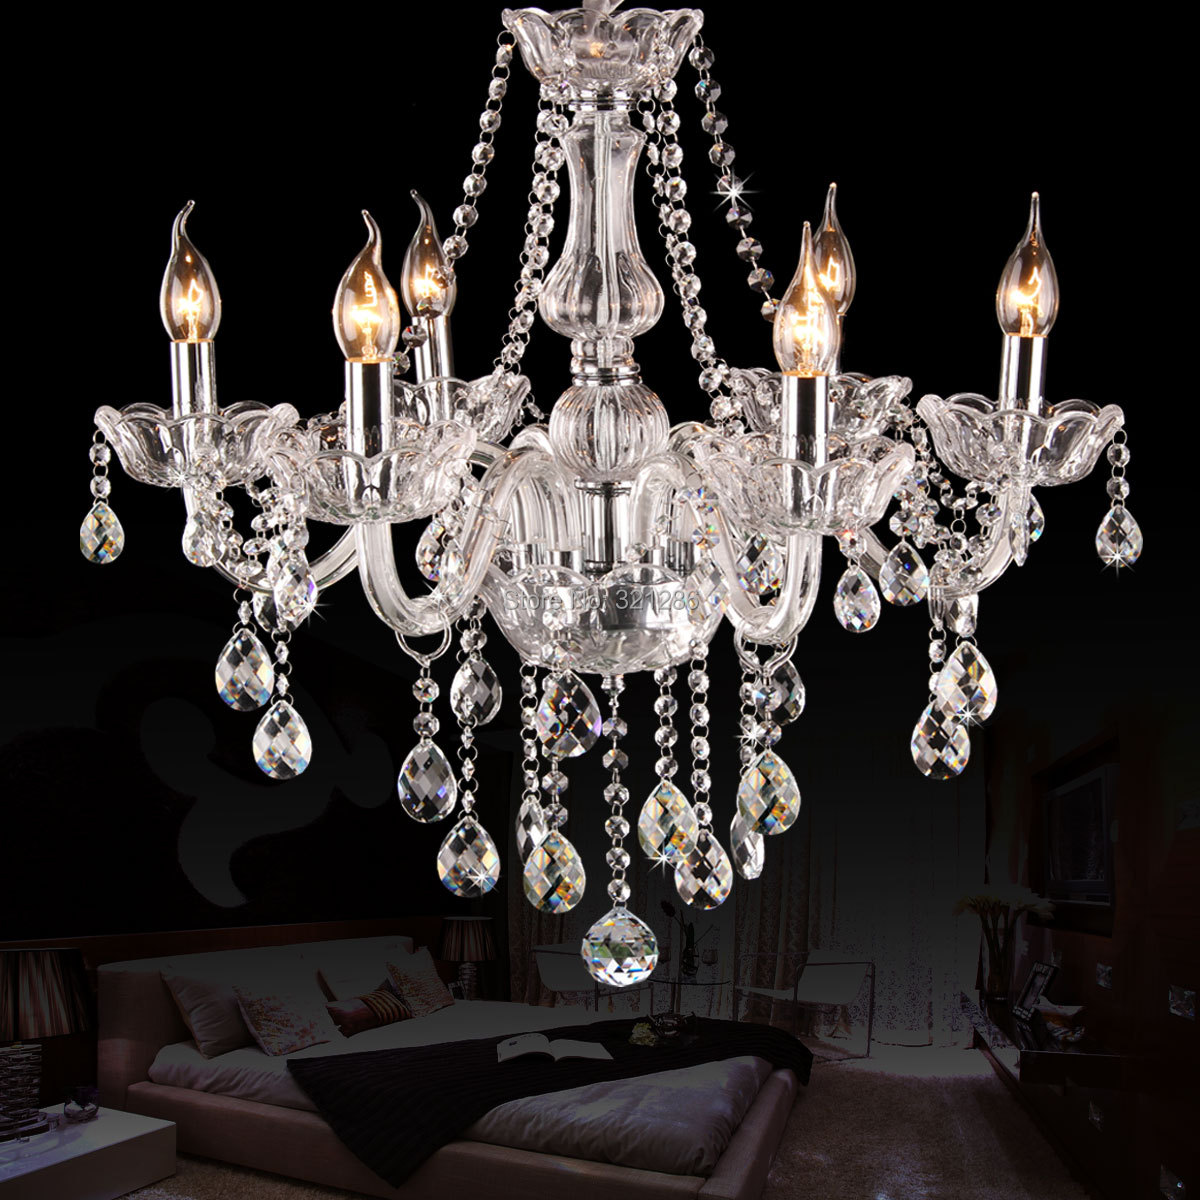 arms k9 crystal chandelier european candle crystal chandeliers bedroom